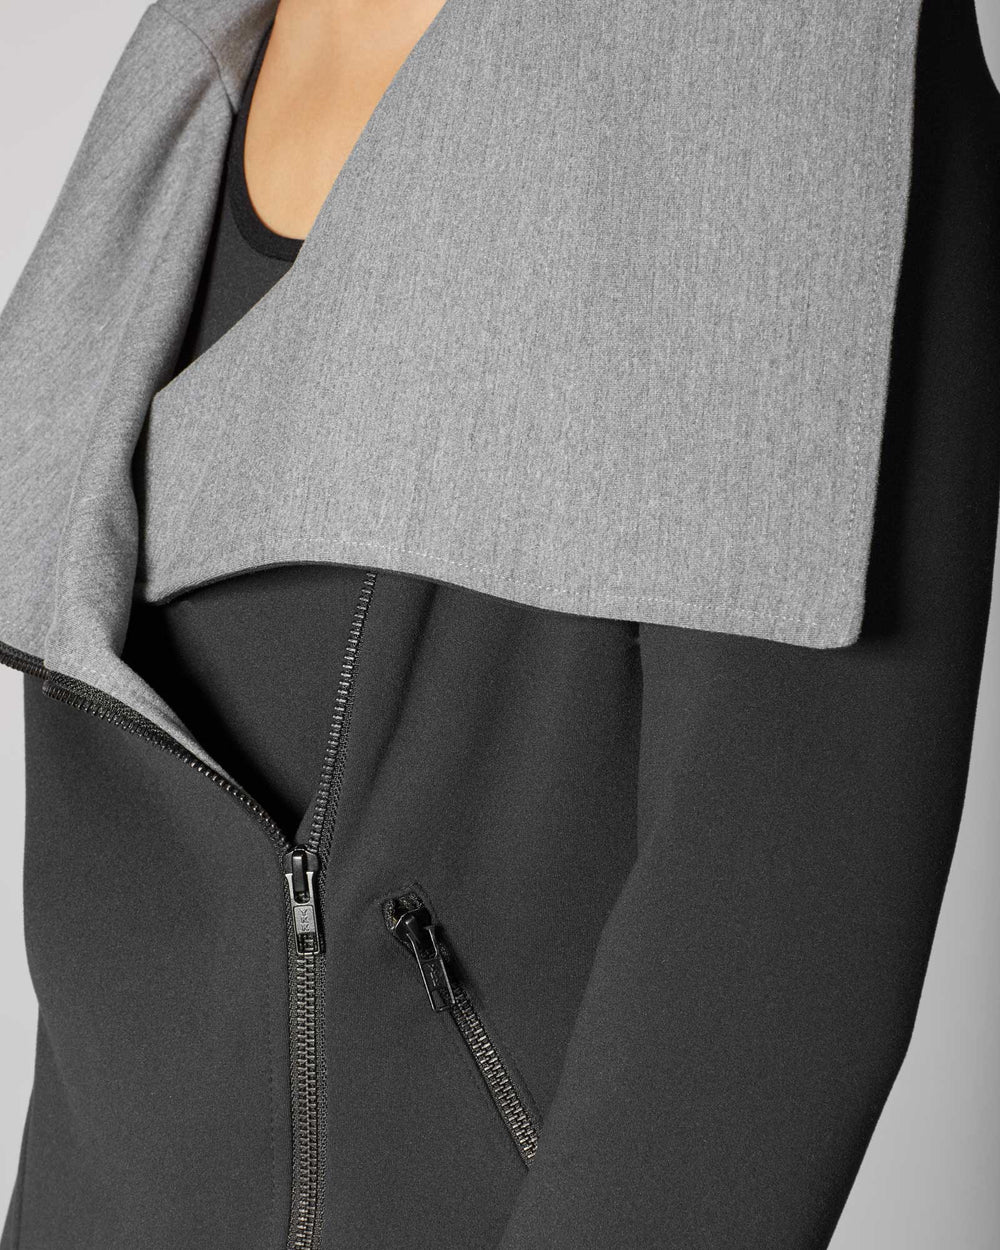 Lotus Jacket - Grey/Black